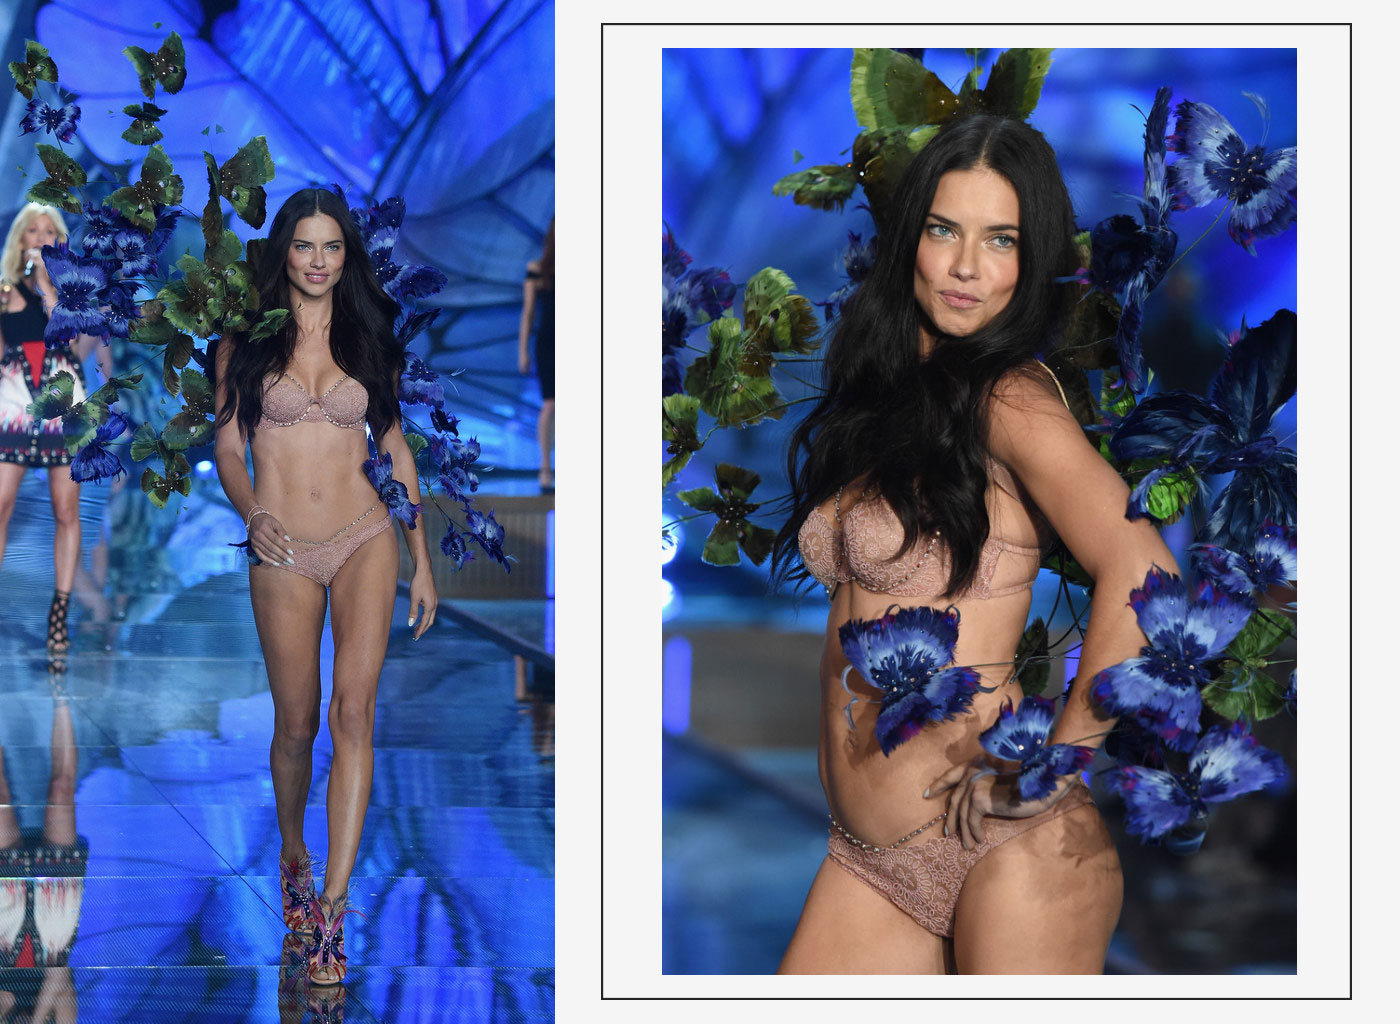 Victorias Secret fashion show 2015 veteran model Adriana Lima